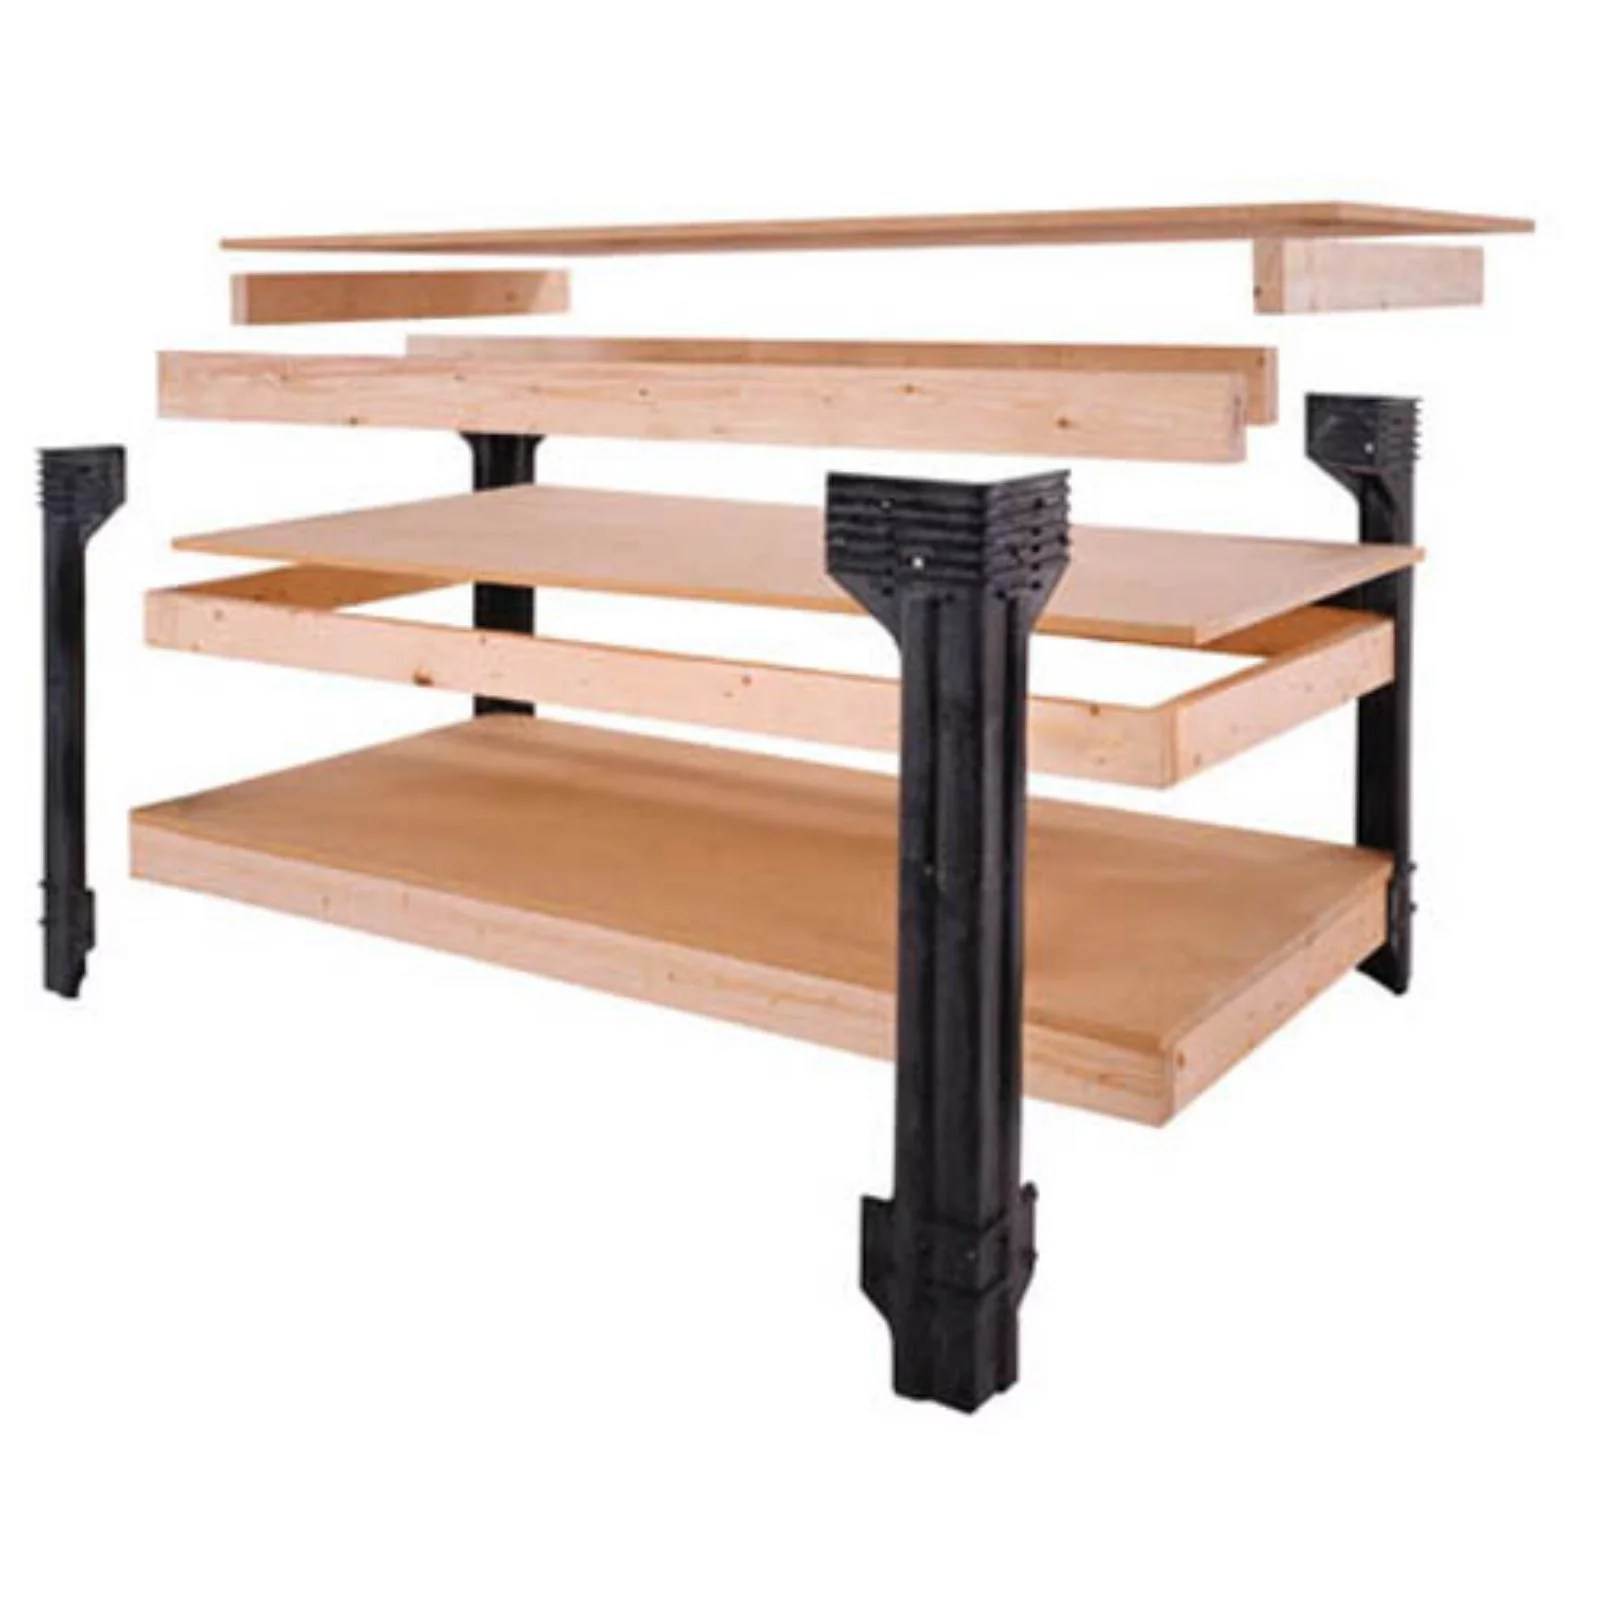 2x4 Basics Workbench Legs Wood Walmart Com Walmart Com